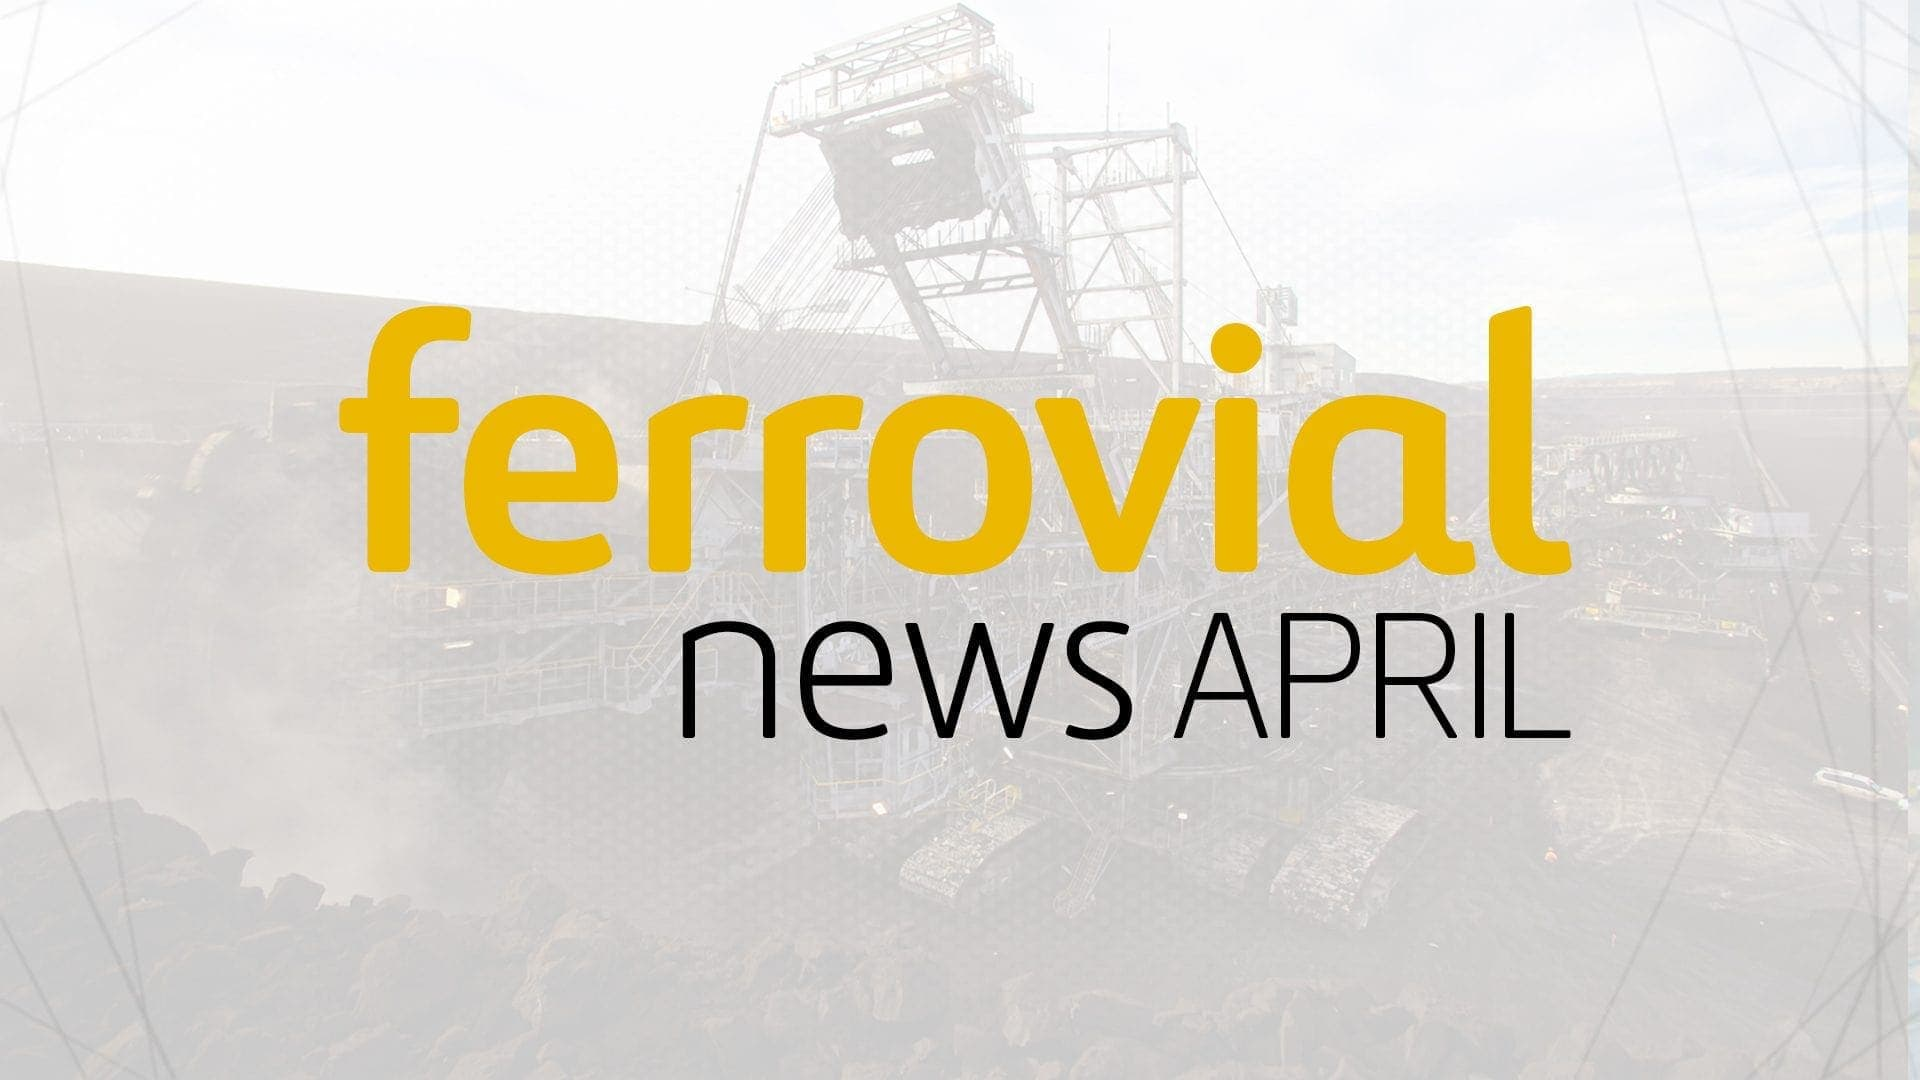 Ferrovial's April News Highlights